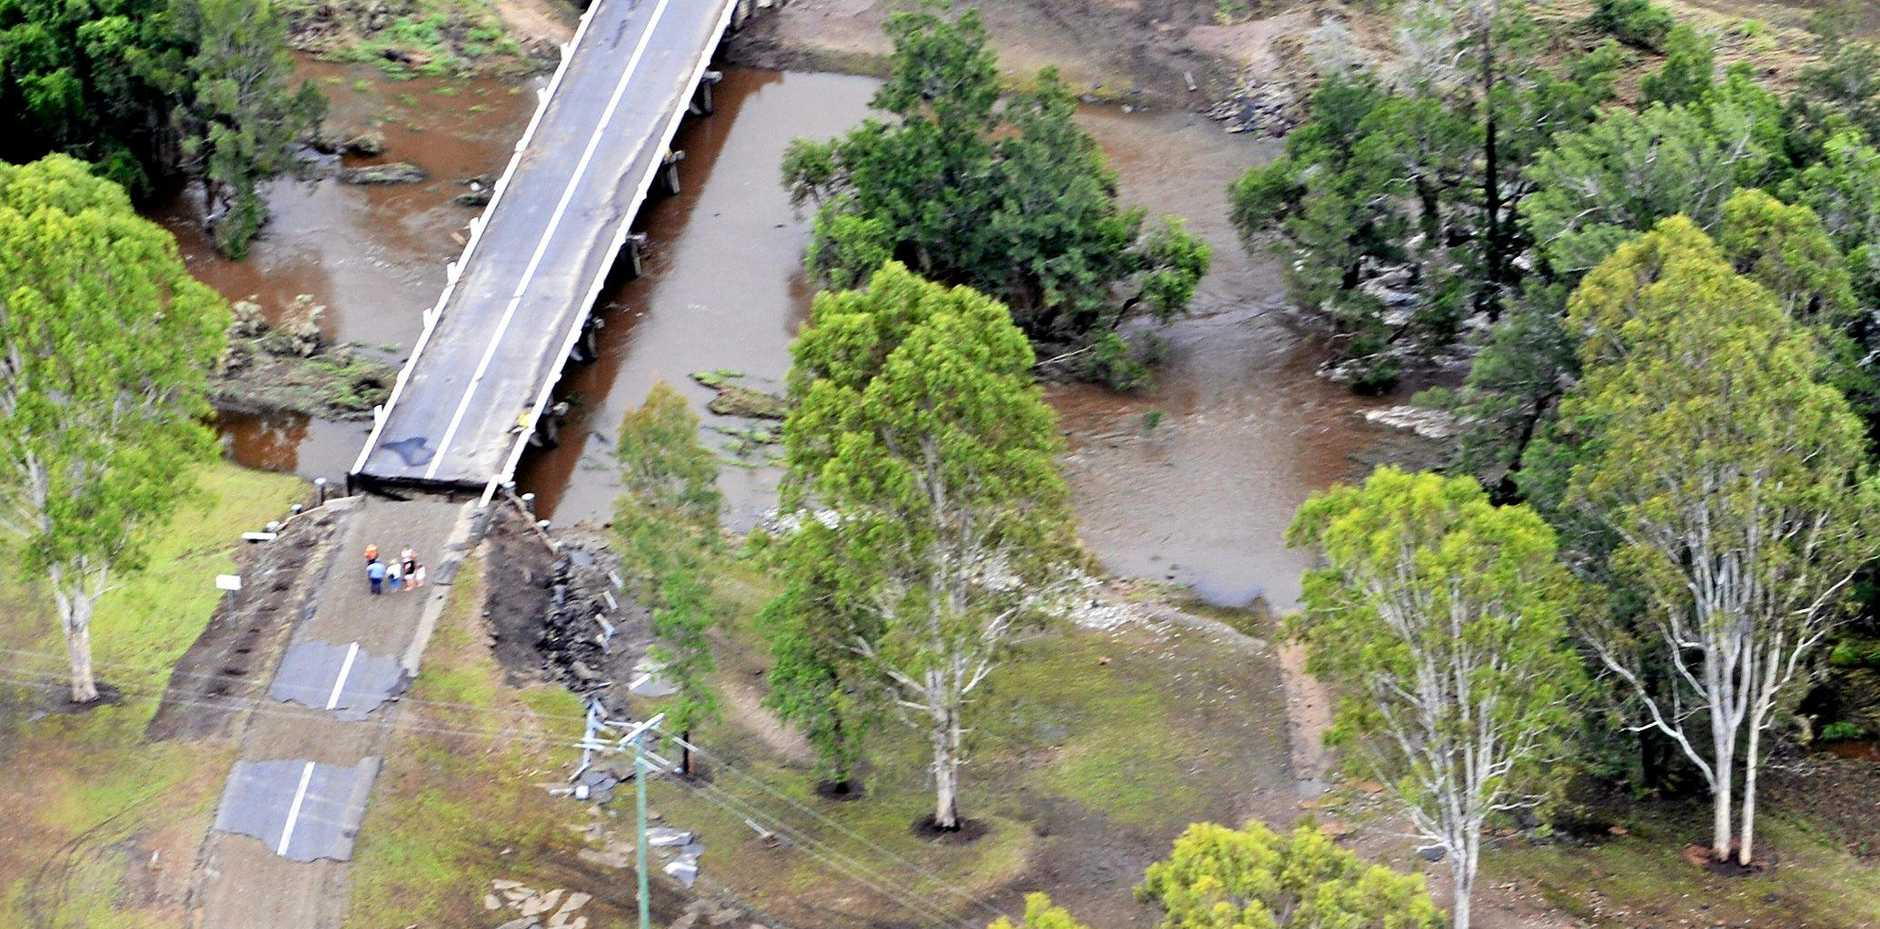 2013 aerial footage of the flood damage to the Widgee Road.